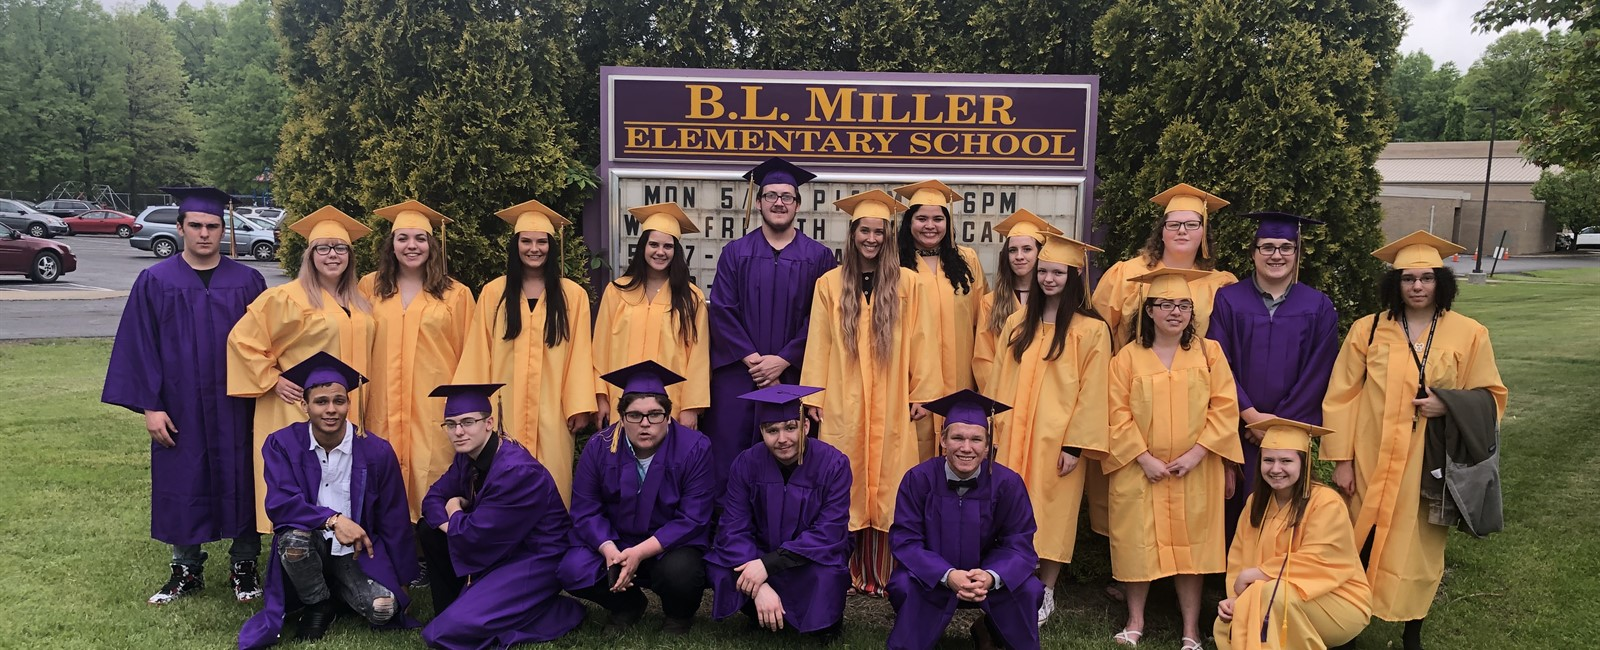 Seniors returned to visit B.L. Miller Elementary School one last time before graduation.